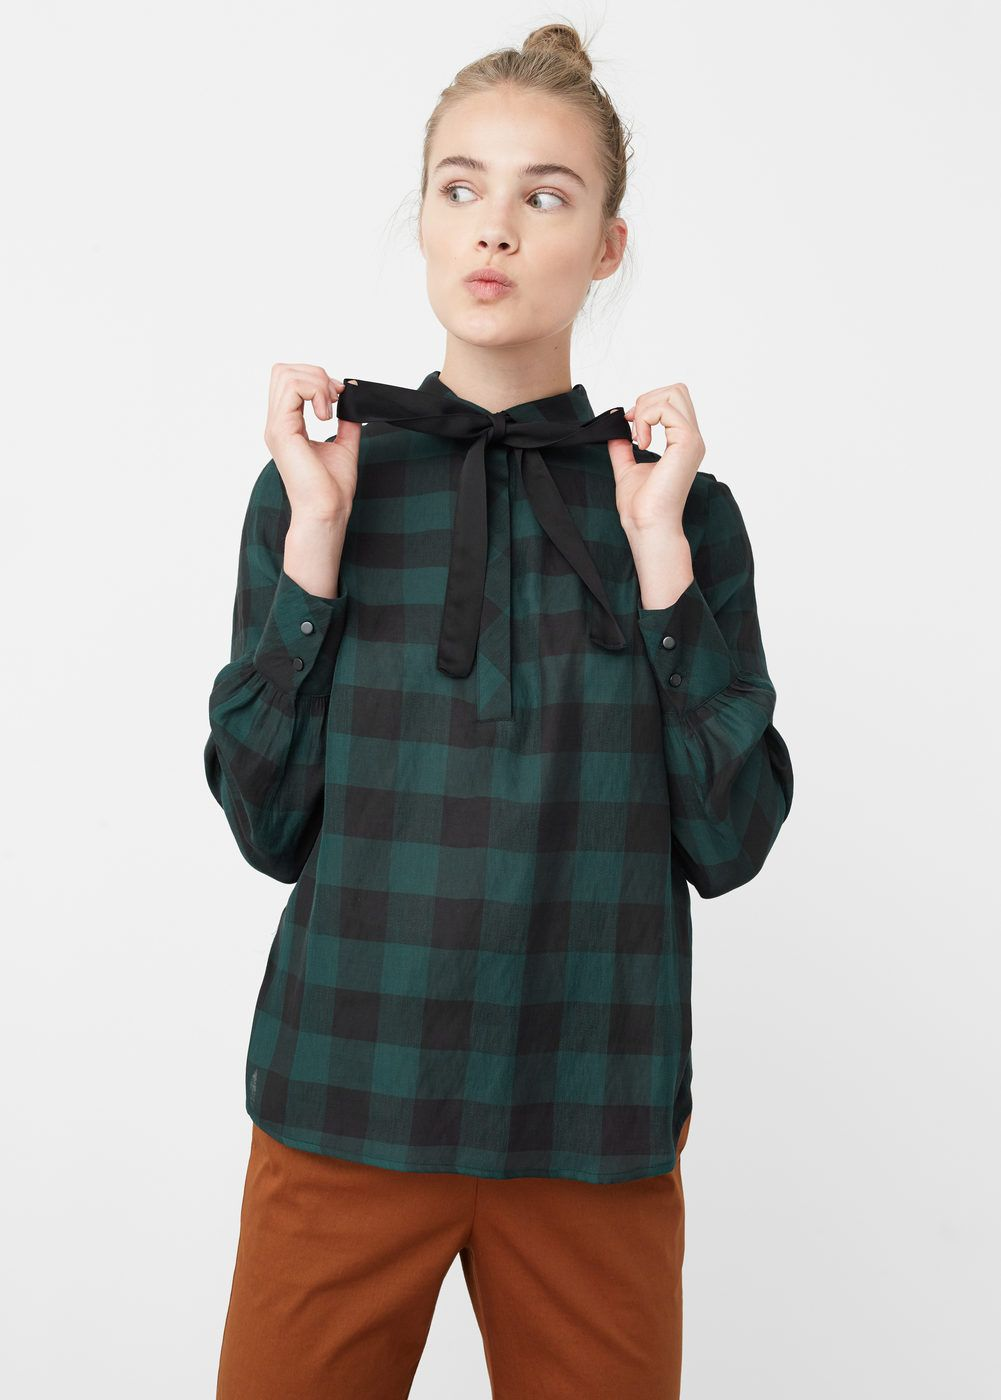 Camisas Camisa Cuadros Cuadros Pinterest Camisa Mujer PgxUwIqgS